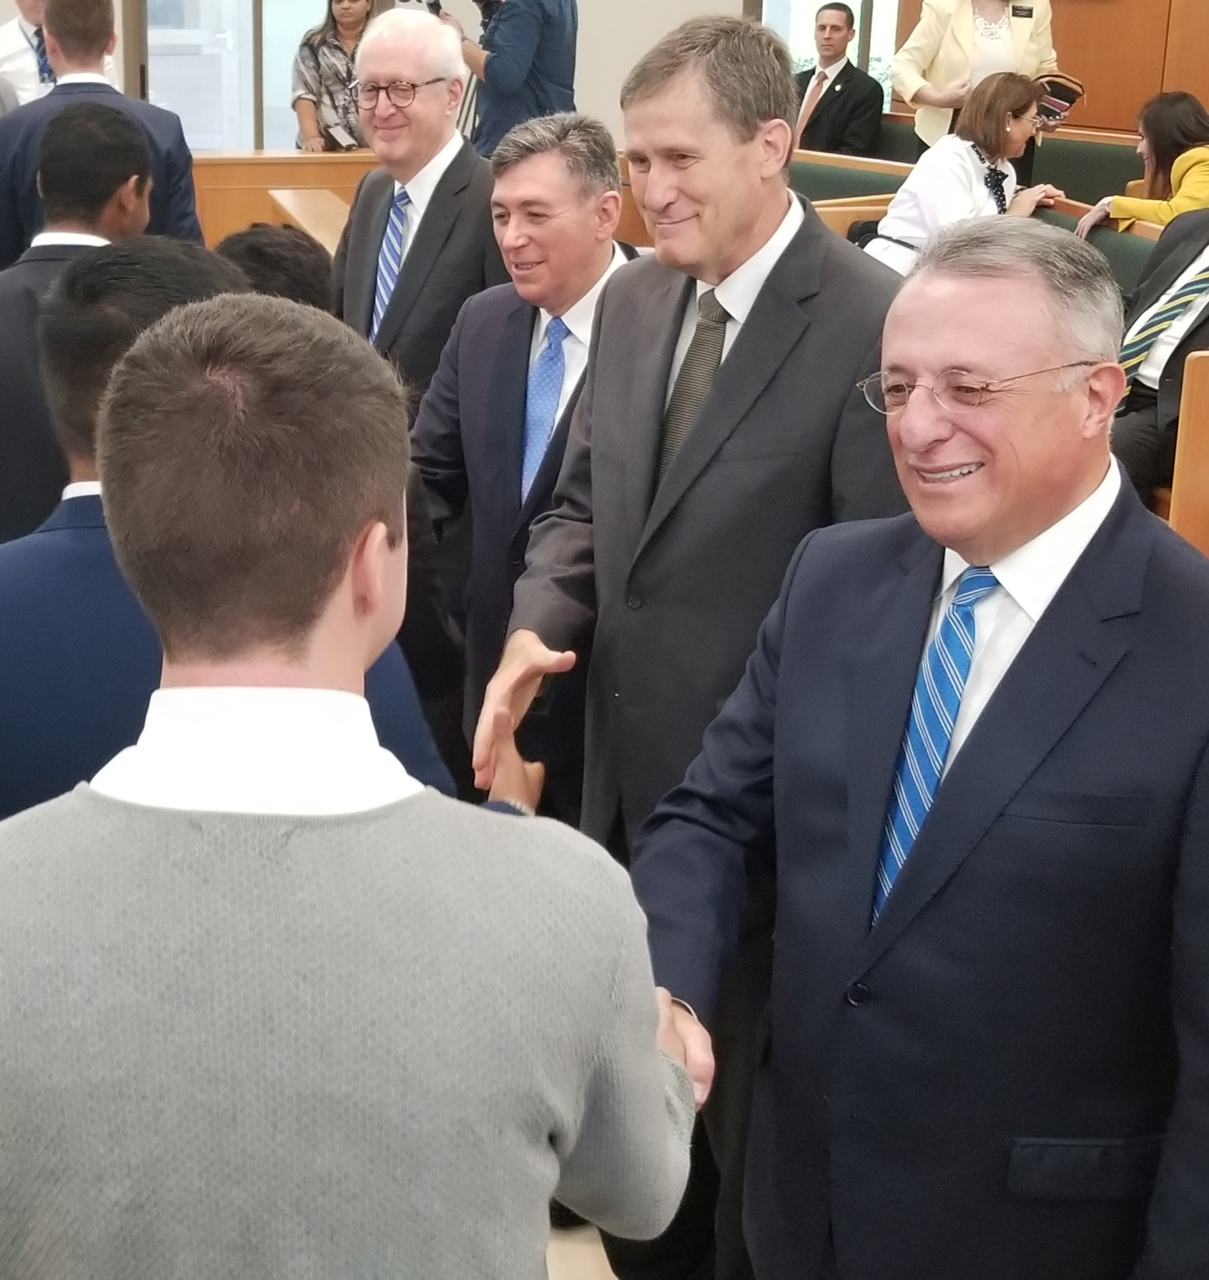 Elder Ulisses Soares of the Quorum of the Twelve Apostles greets a missionary before a meeting with the Brazil Fortaleza and Brazil Fortaleza East missions on Saturday, June 1, 2019. Joining Elder Soares are three General Authority Seventies — starting from his side, Elder Marcos A. Aidukaitis, Elder Adilson de Paula Parrella and Elder Larry Y. Wilson.